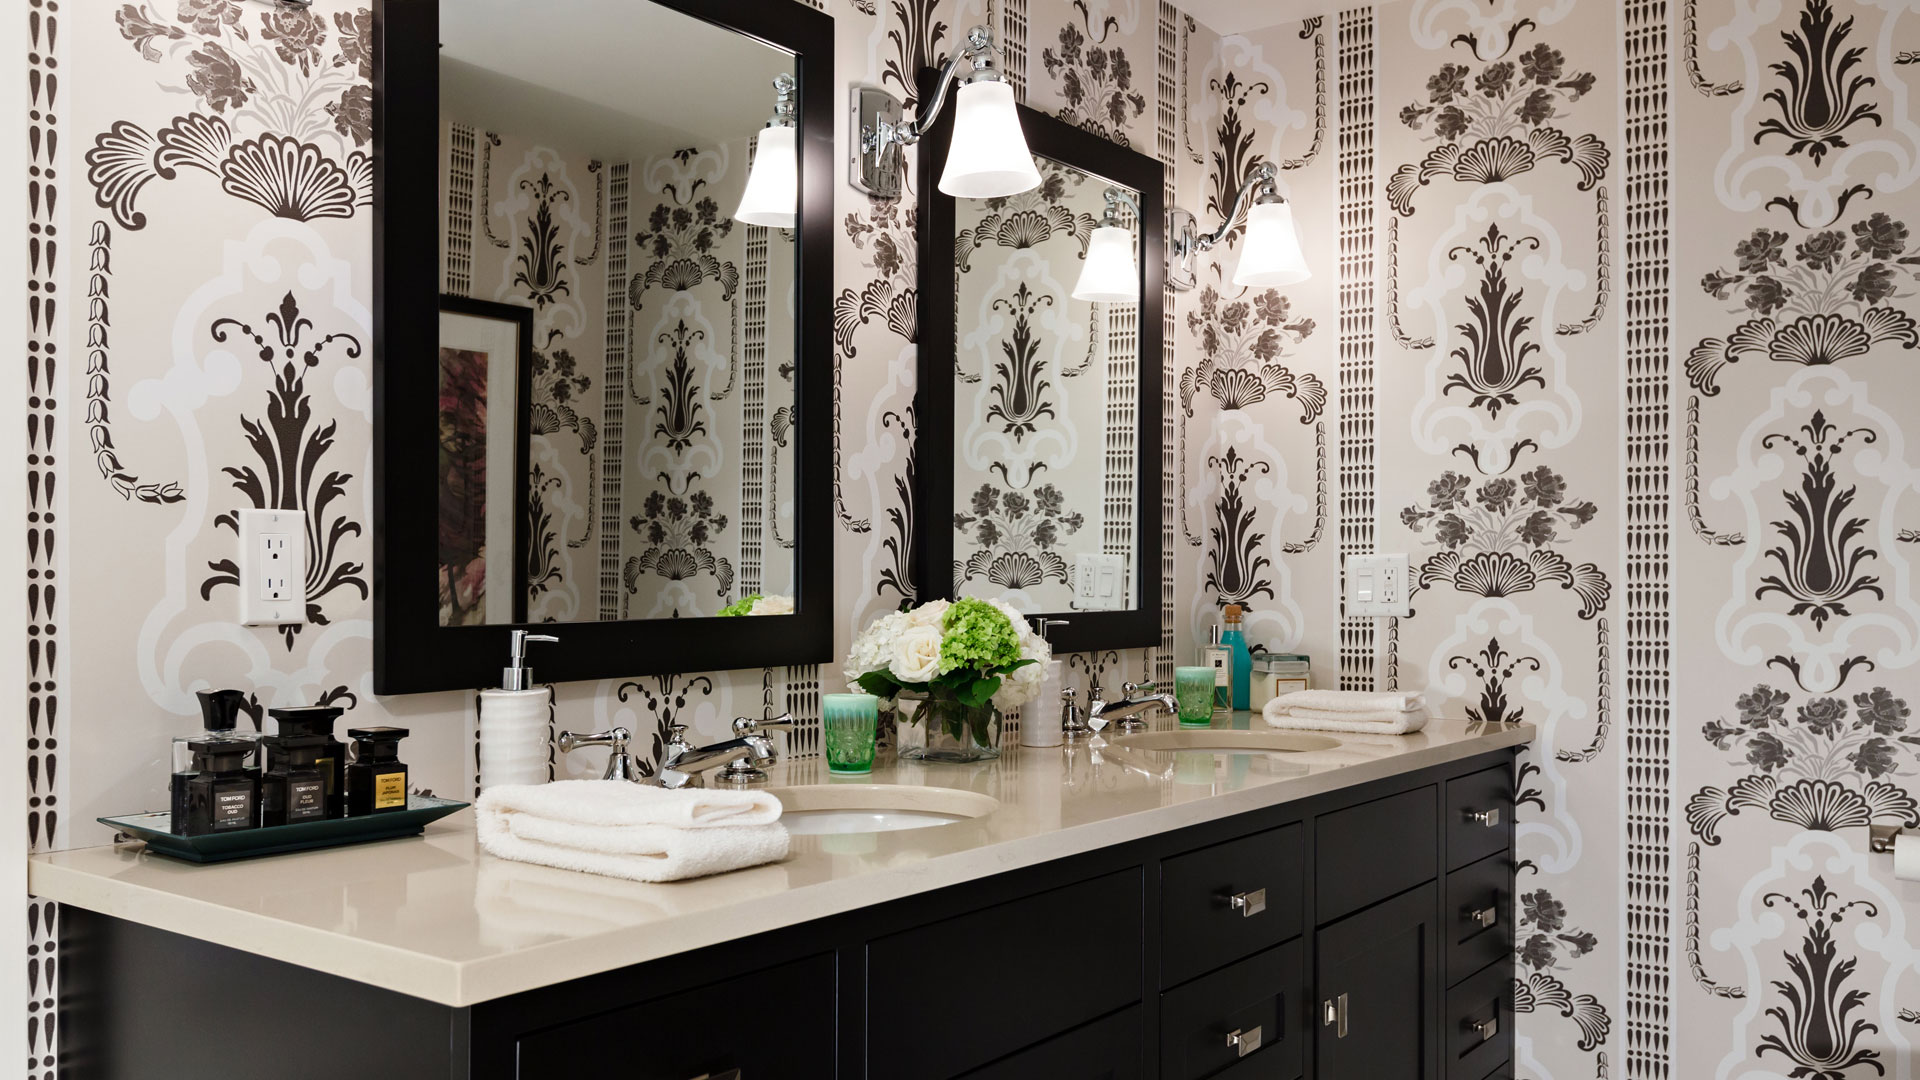 Grant gilvesy design interior design firm of london ontario for Bathroom decor london ontario